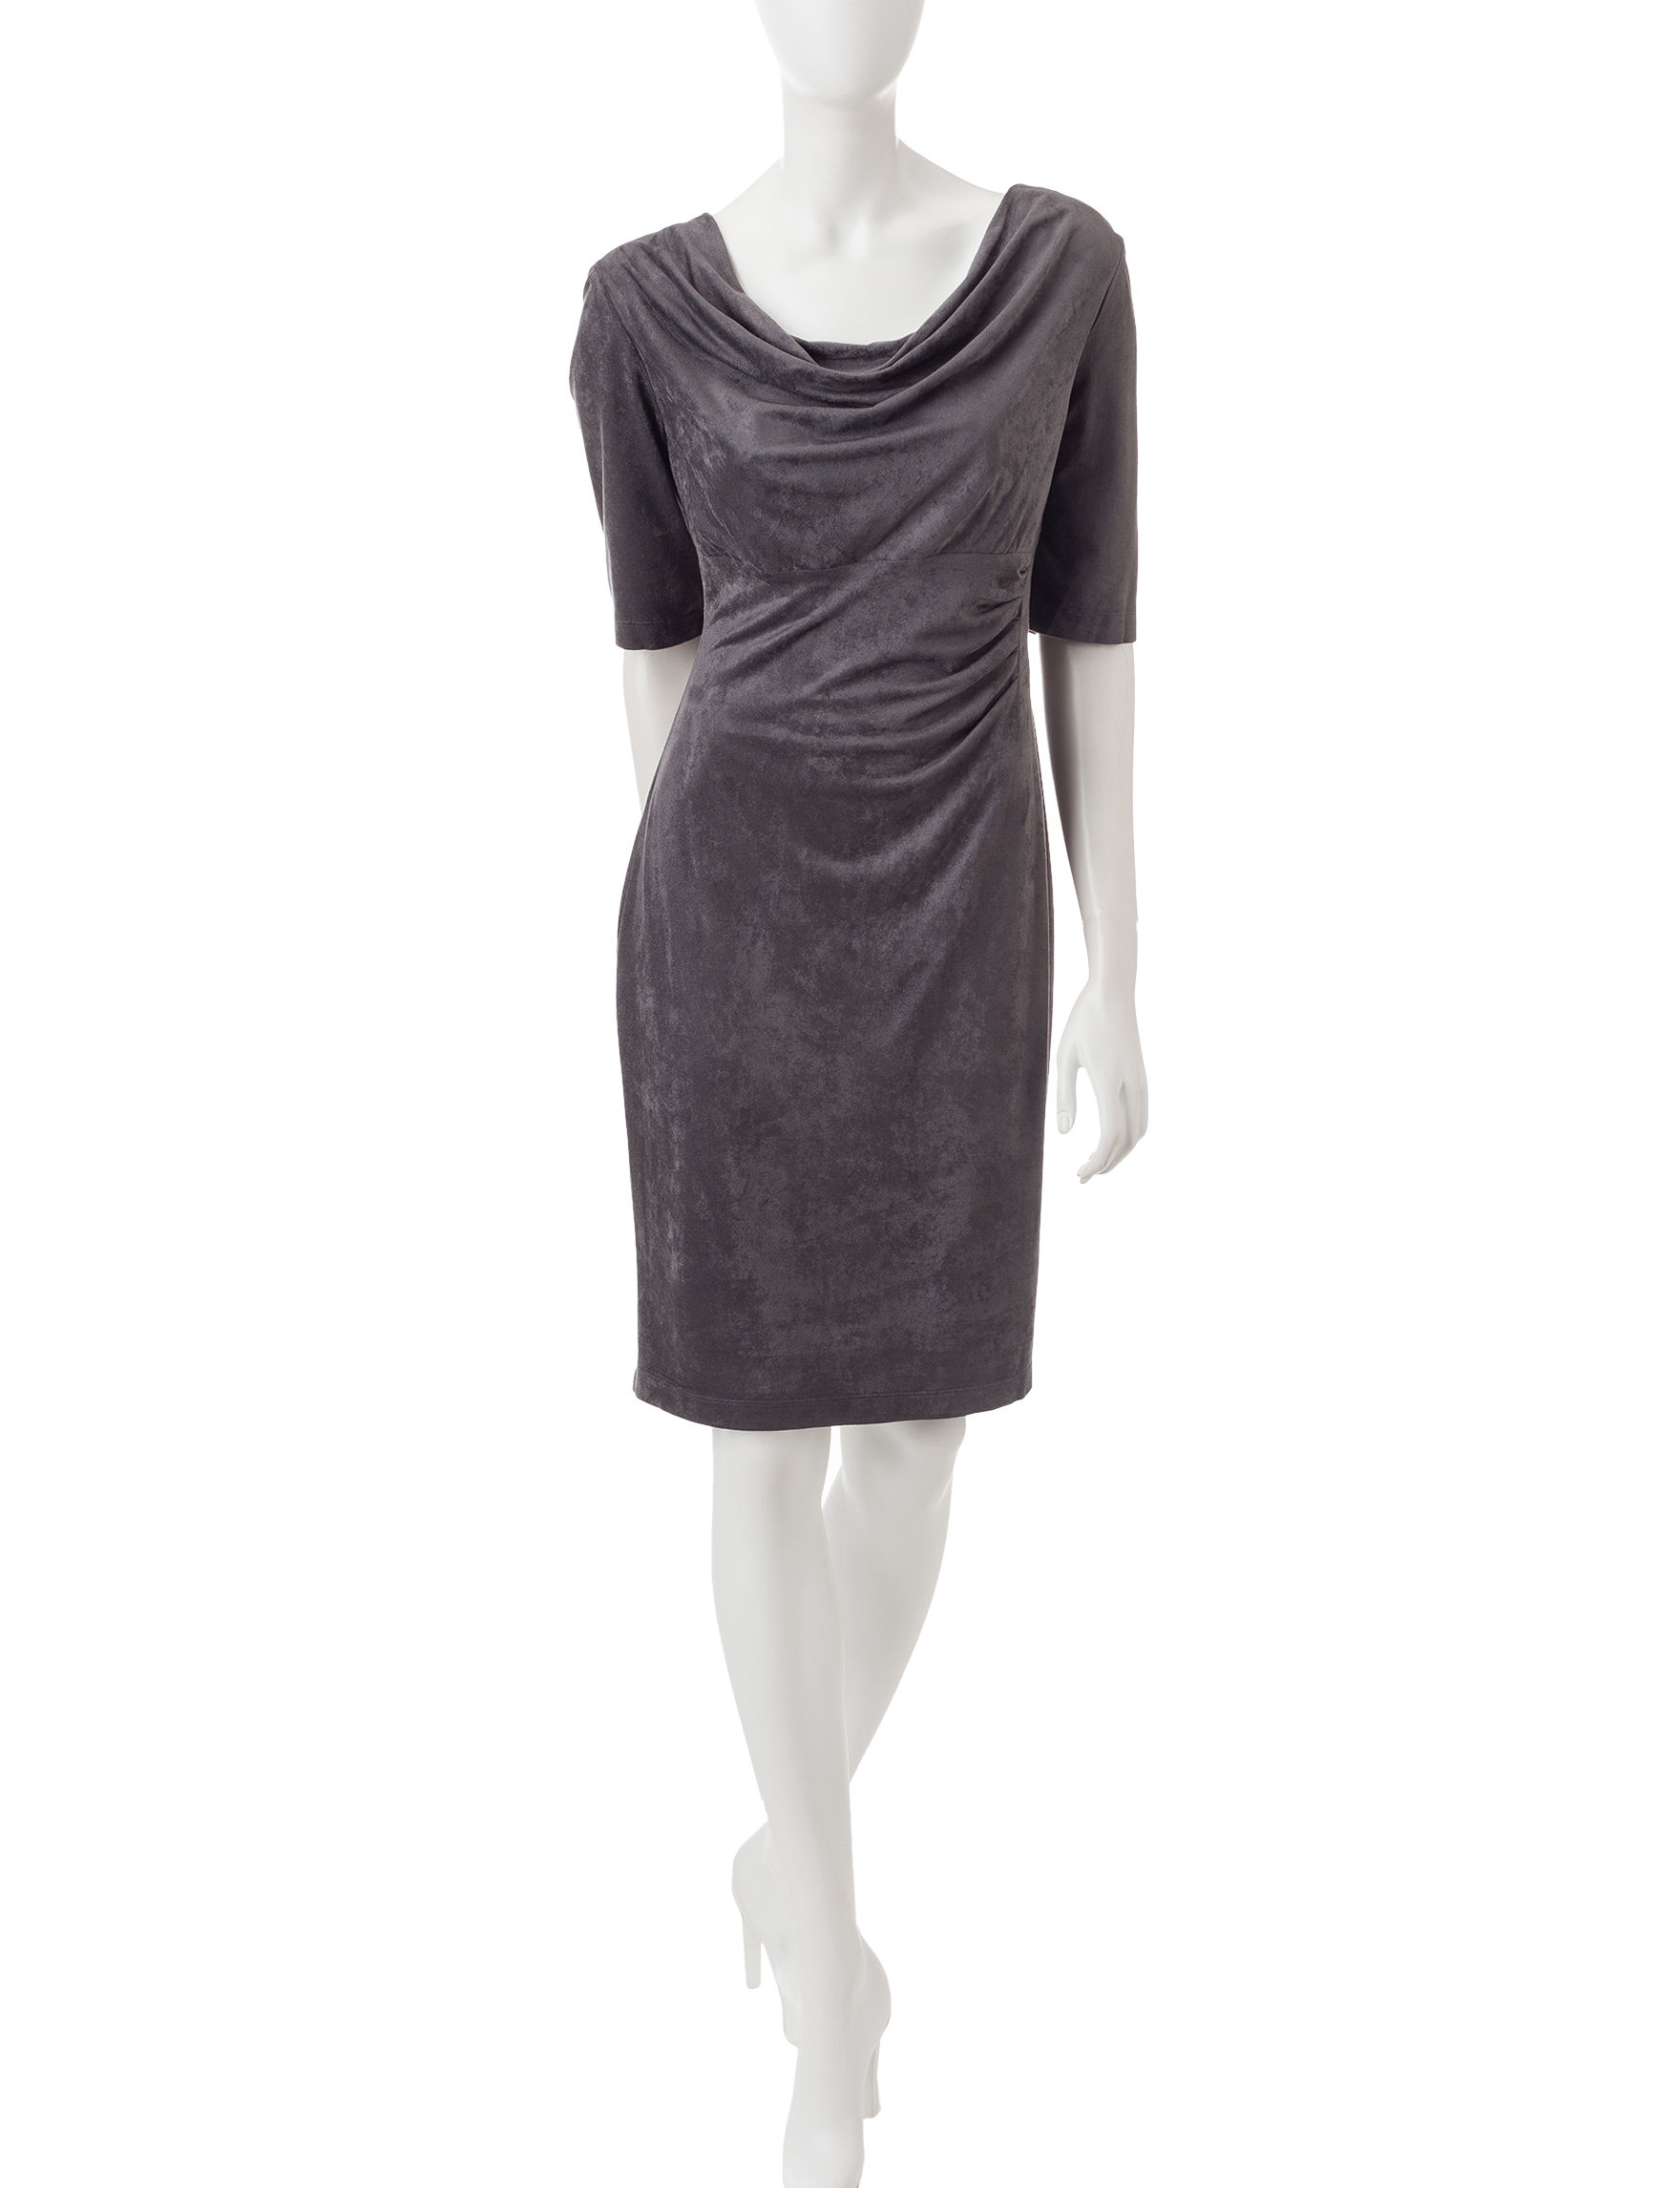 Connected Charcoal Everyday & Casual Sheath Dresses